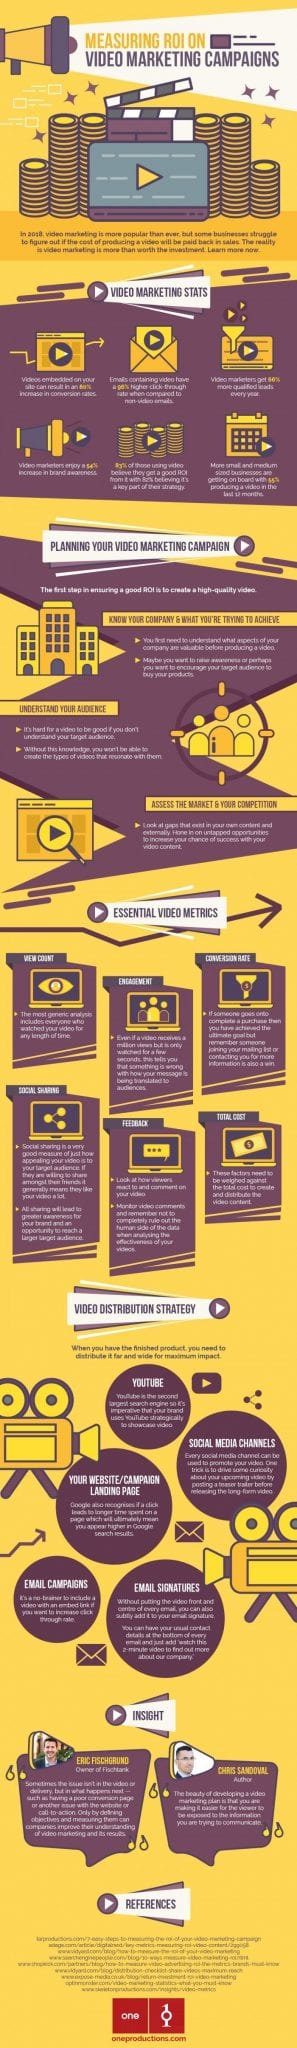 measuring-roi-on-video-marketing-campaigns-infographic